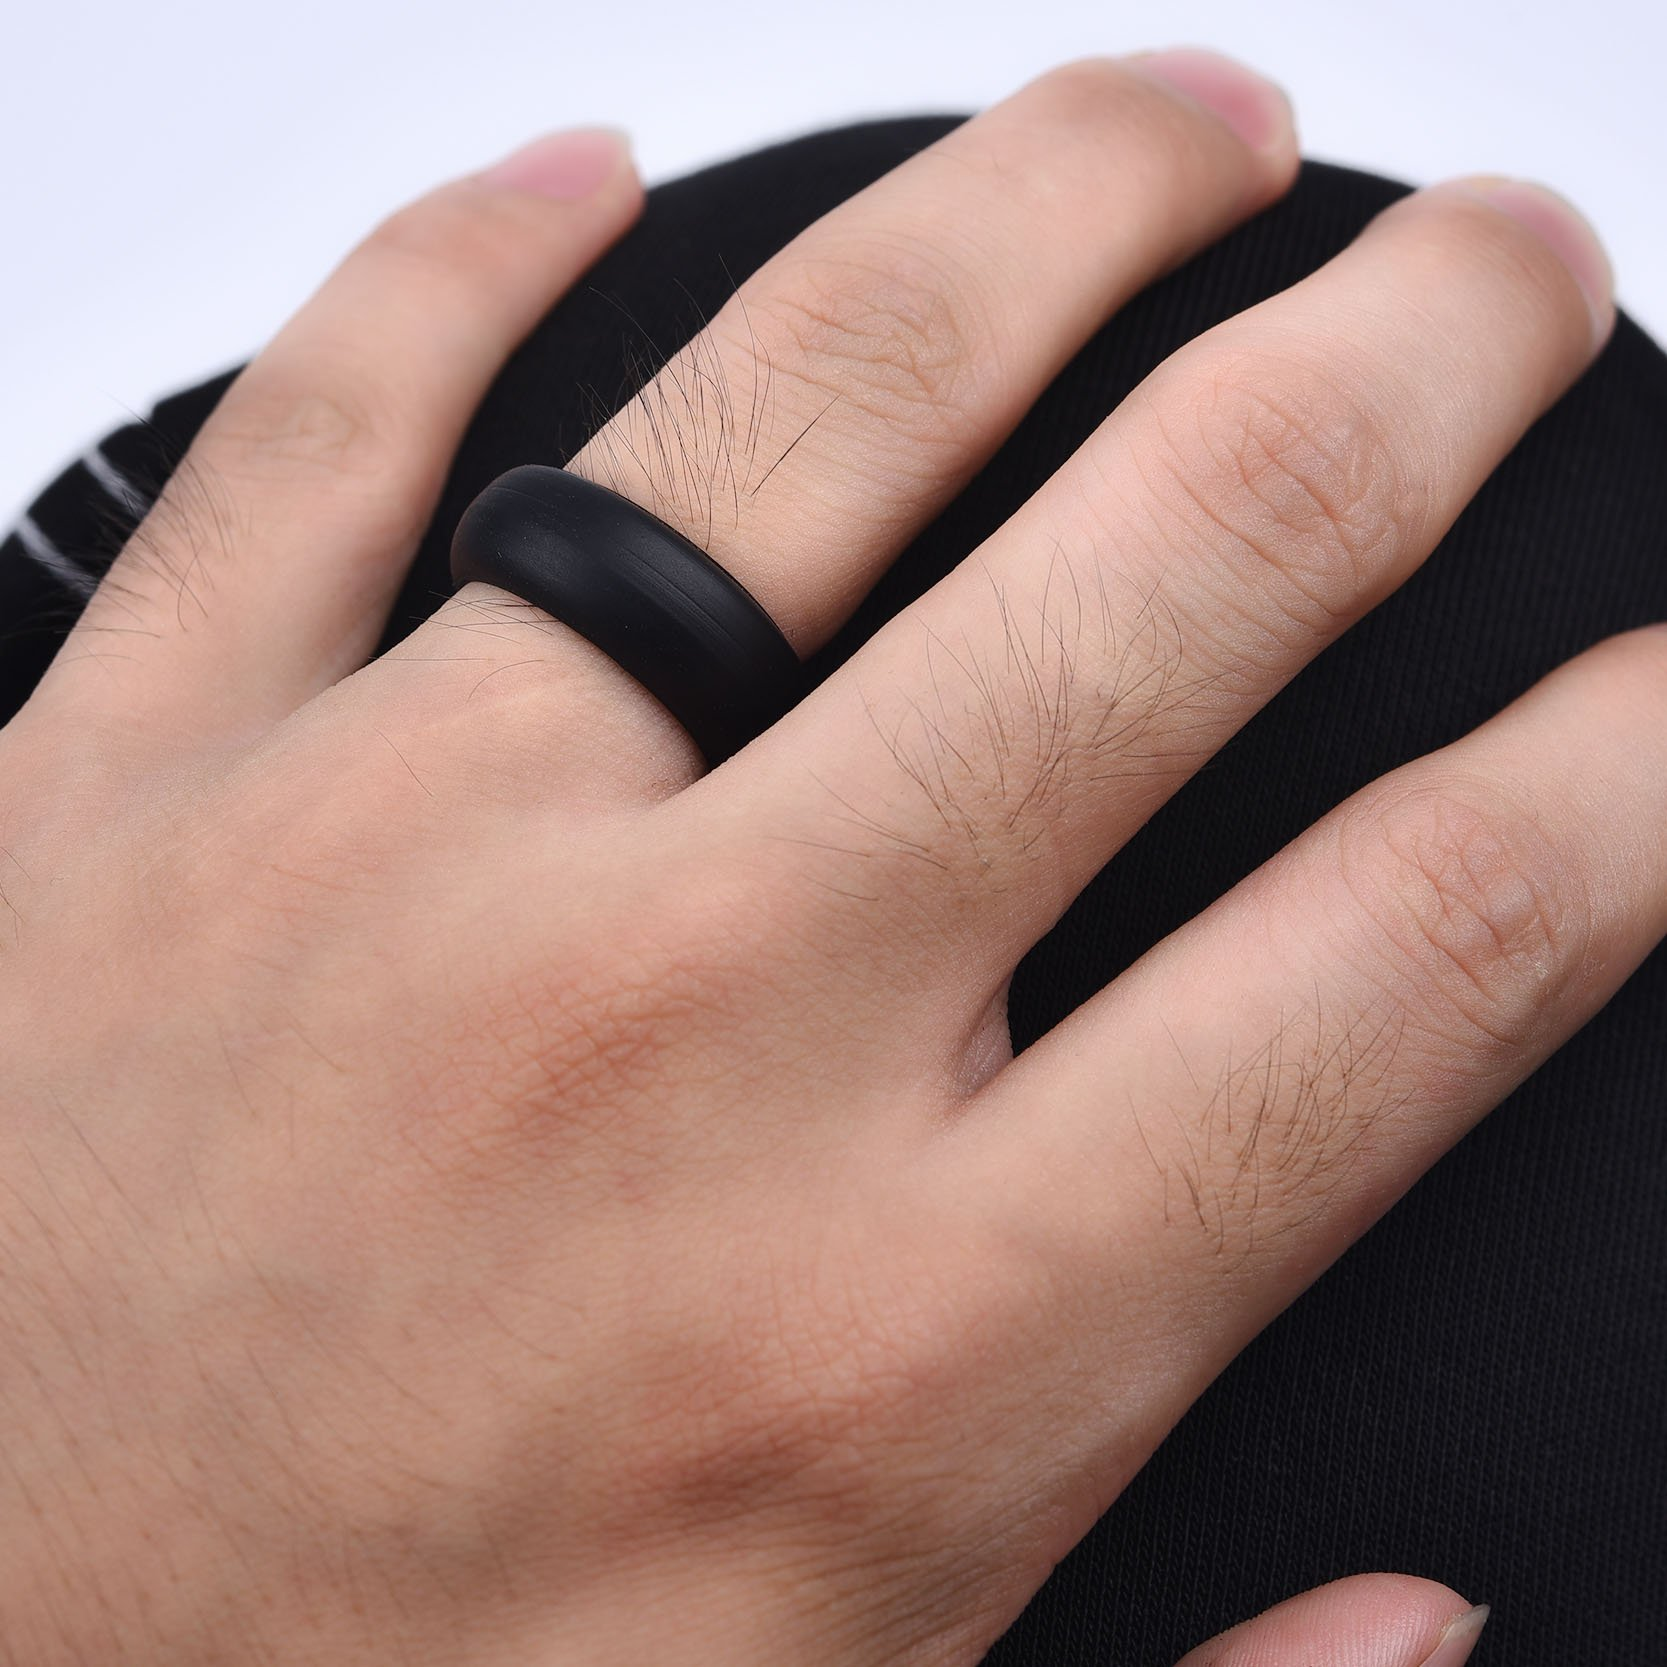 OBSEDE Women Men Vogue Wedding Silicone Ring Smooth Comfort Band Ring Set 6 Pack Size 10 by OBSEDE (Image #5)